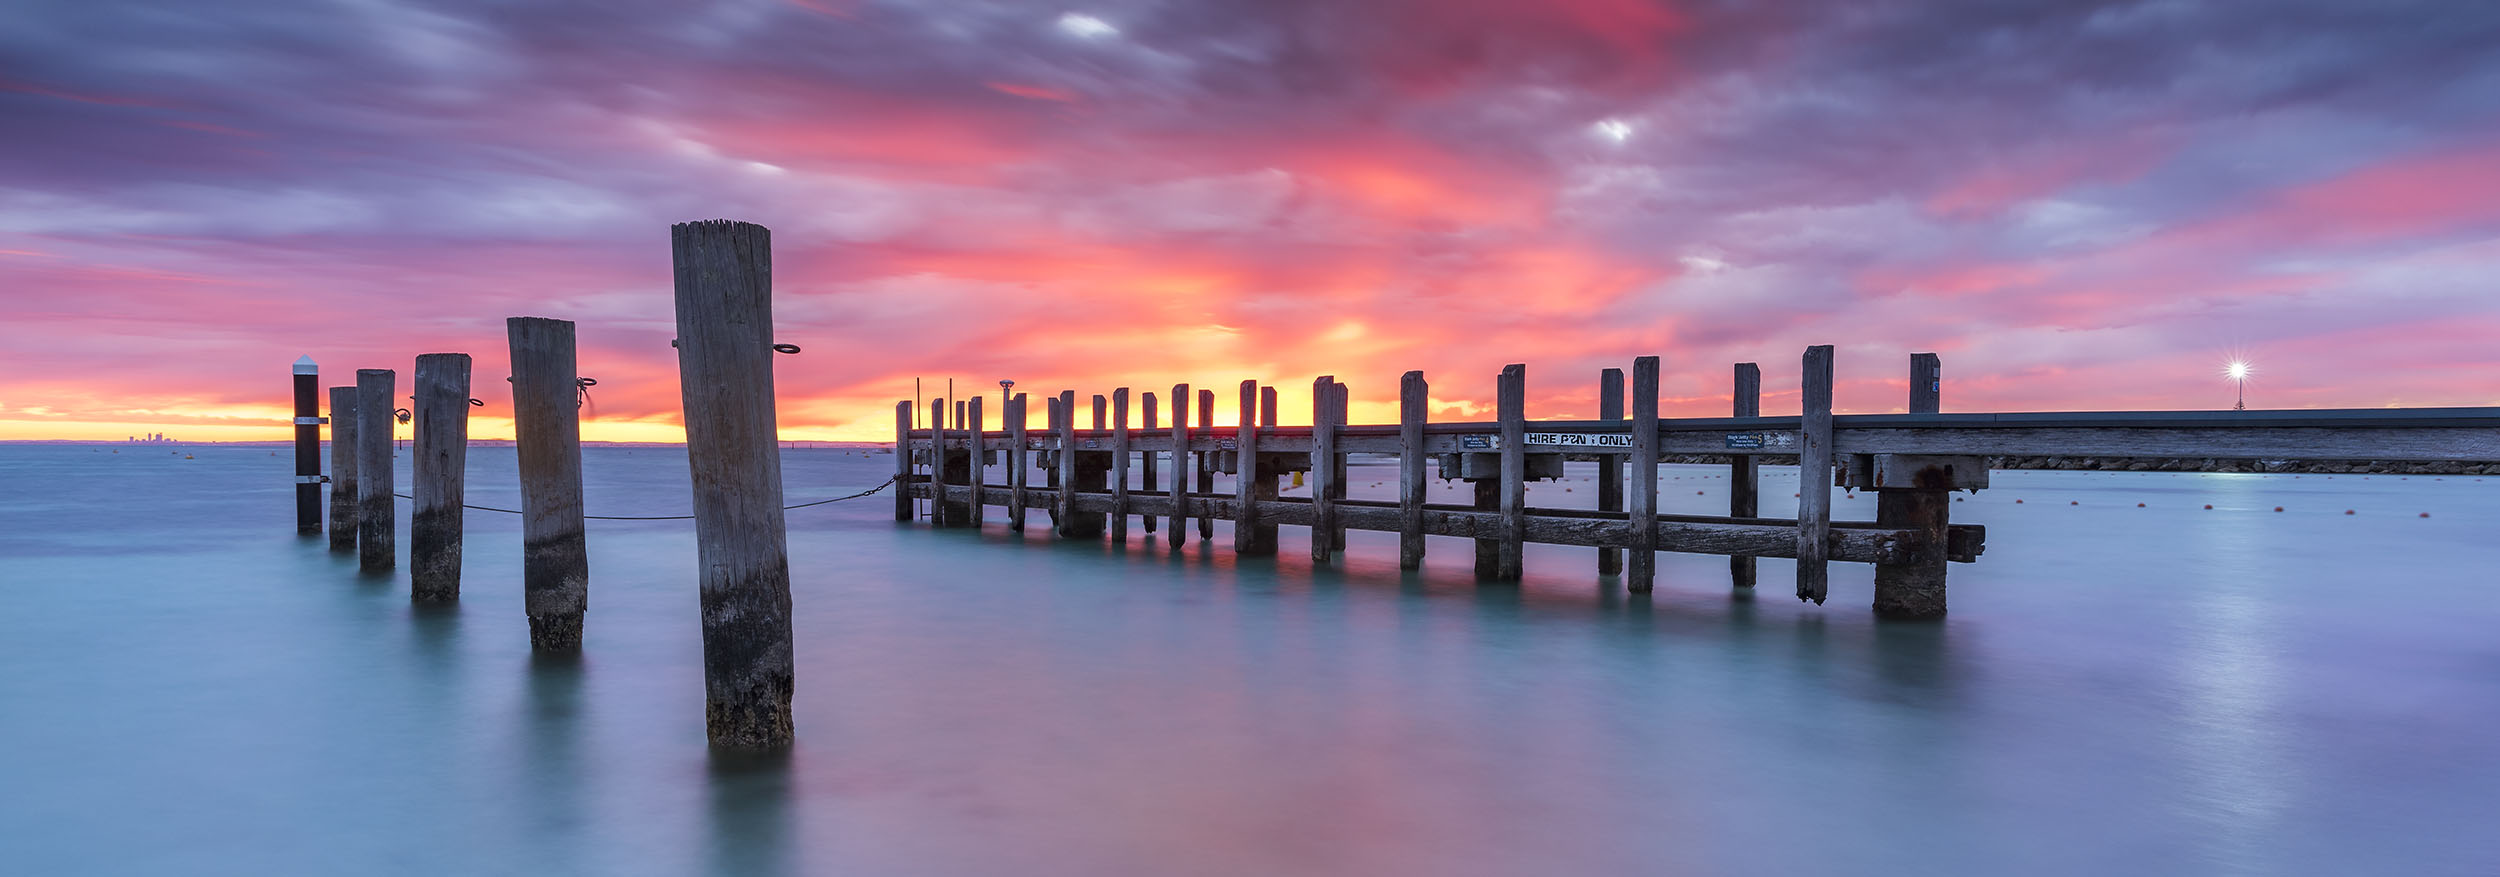 THOMSON BAY - STARK JETTY SUNRISE SPECIAL